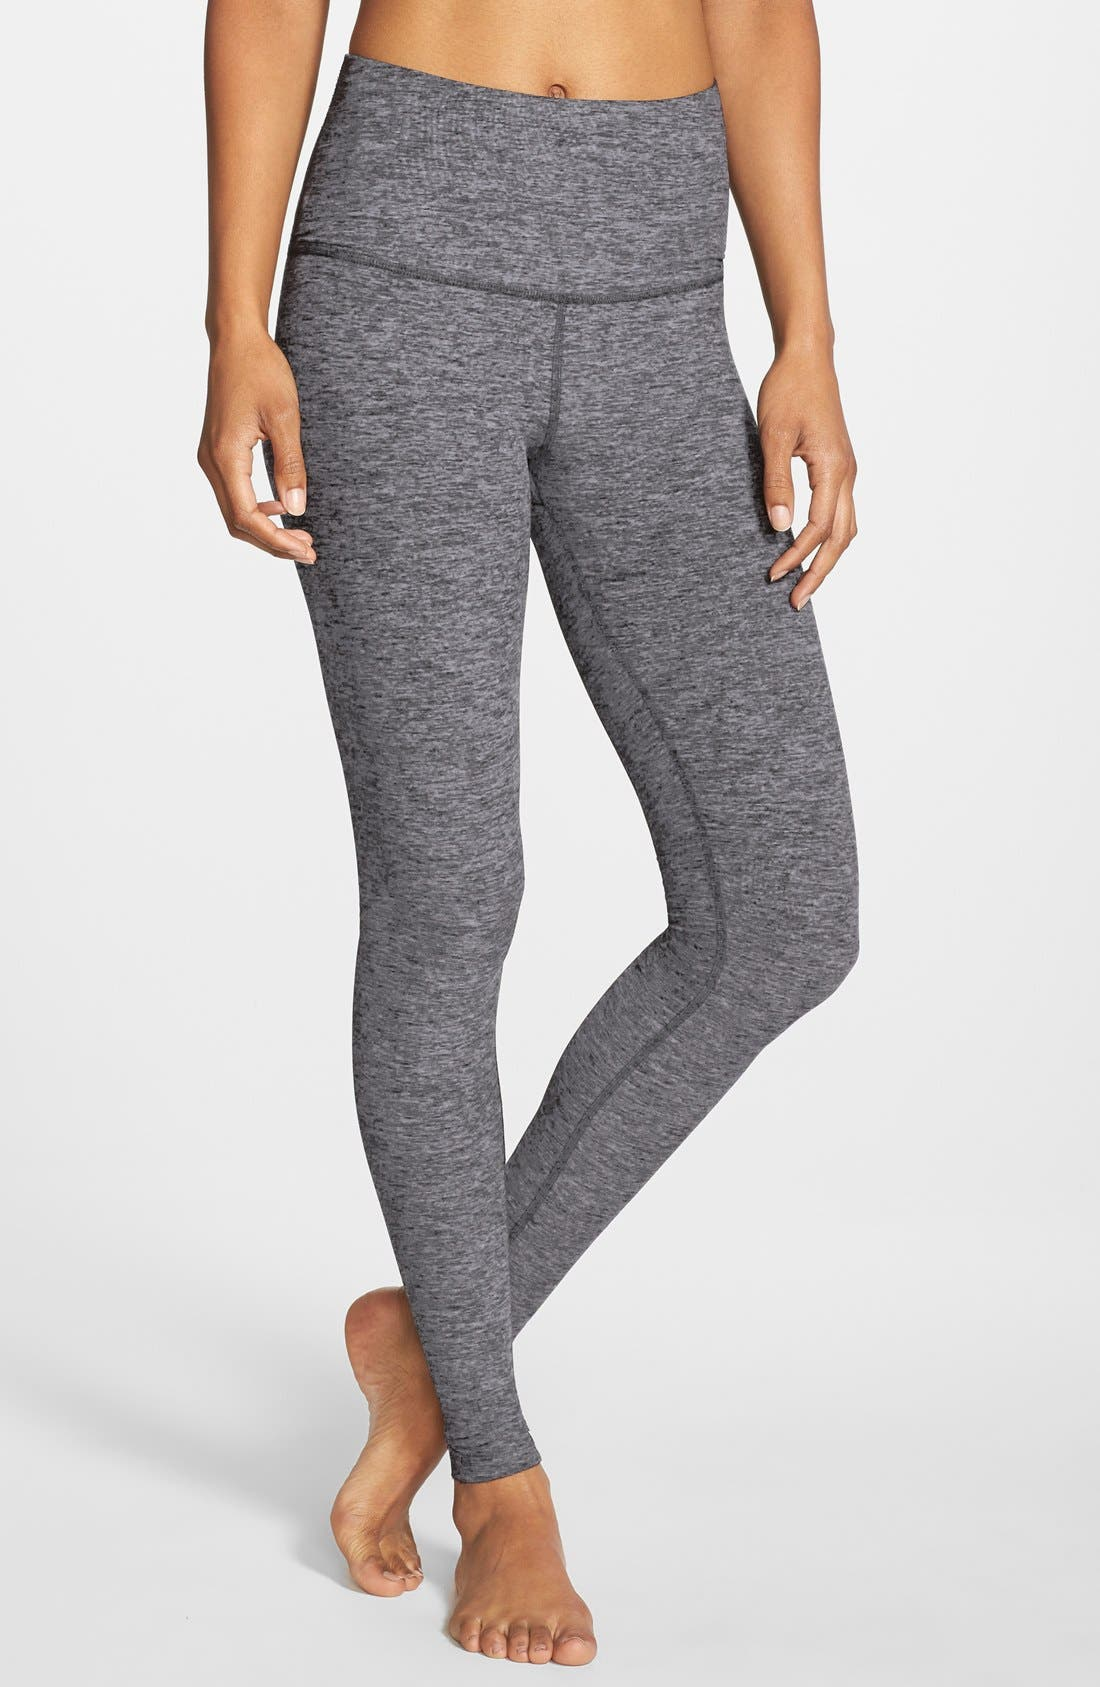 Beyond Yoga High Waist Leggings